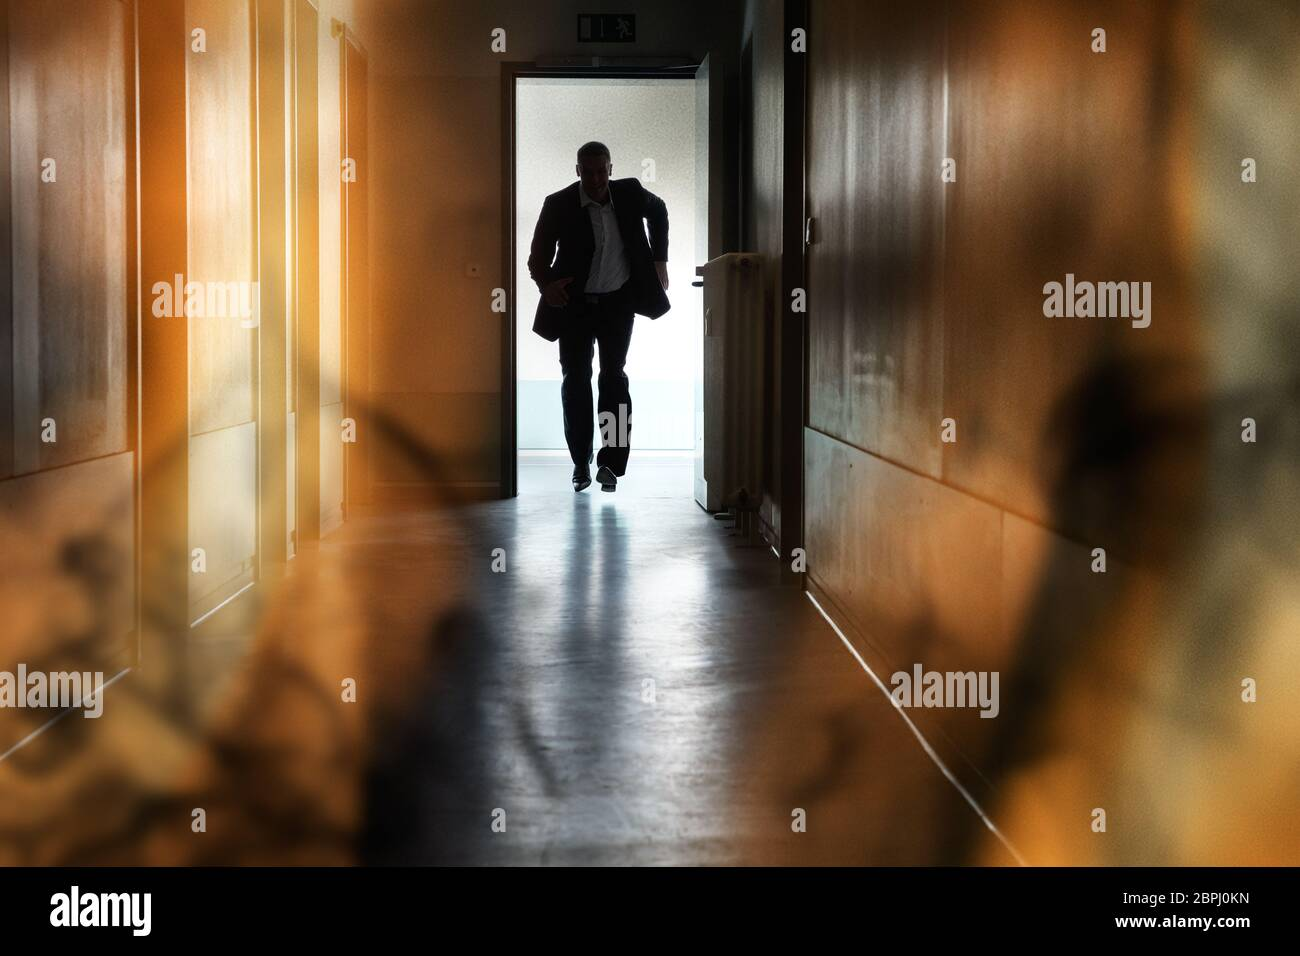 Silhouette Of Person Running Out Of Fire Escape On Corridor Of Building Stock Photo